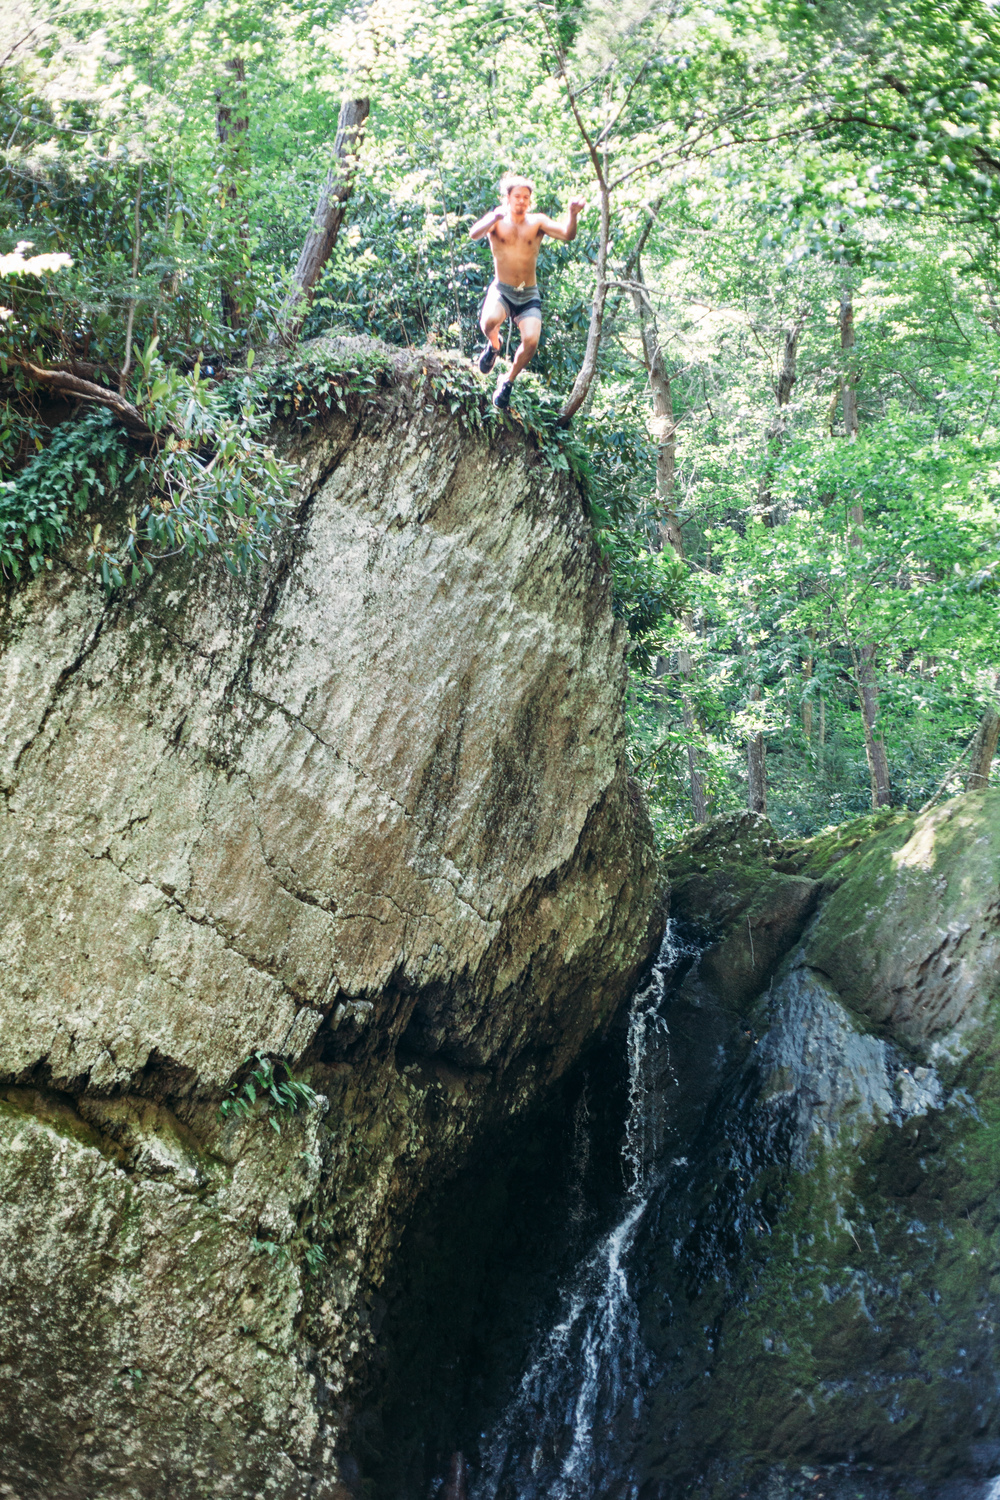 Cliff jumping off a waterfall along Adams Creek Trail in the forests of Pennsylvania.